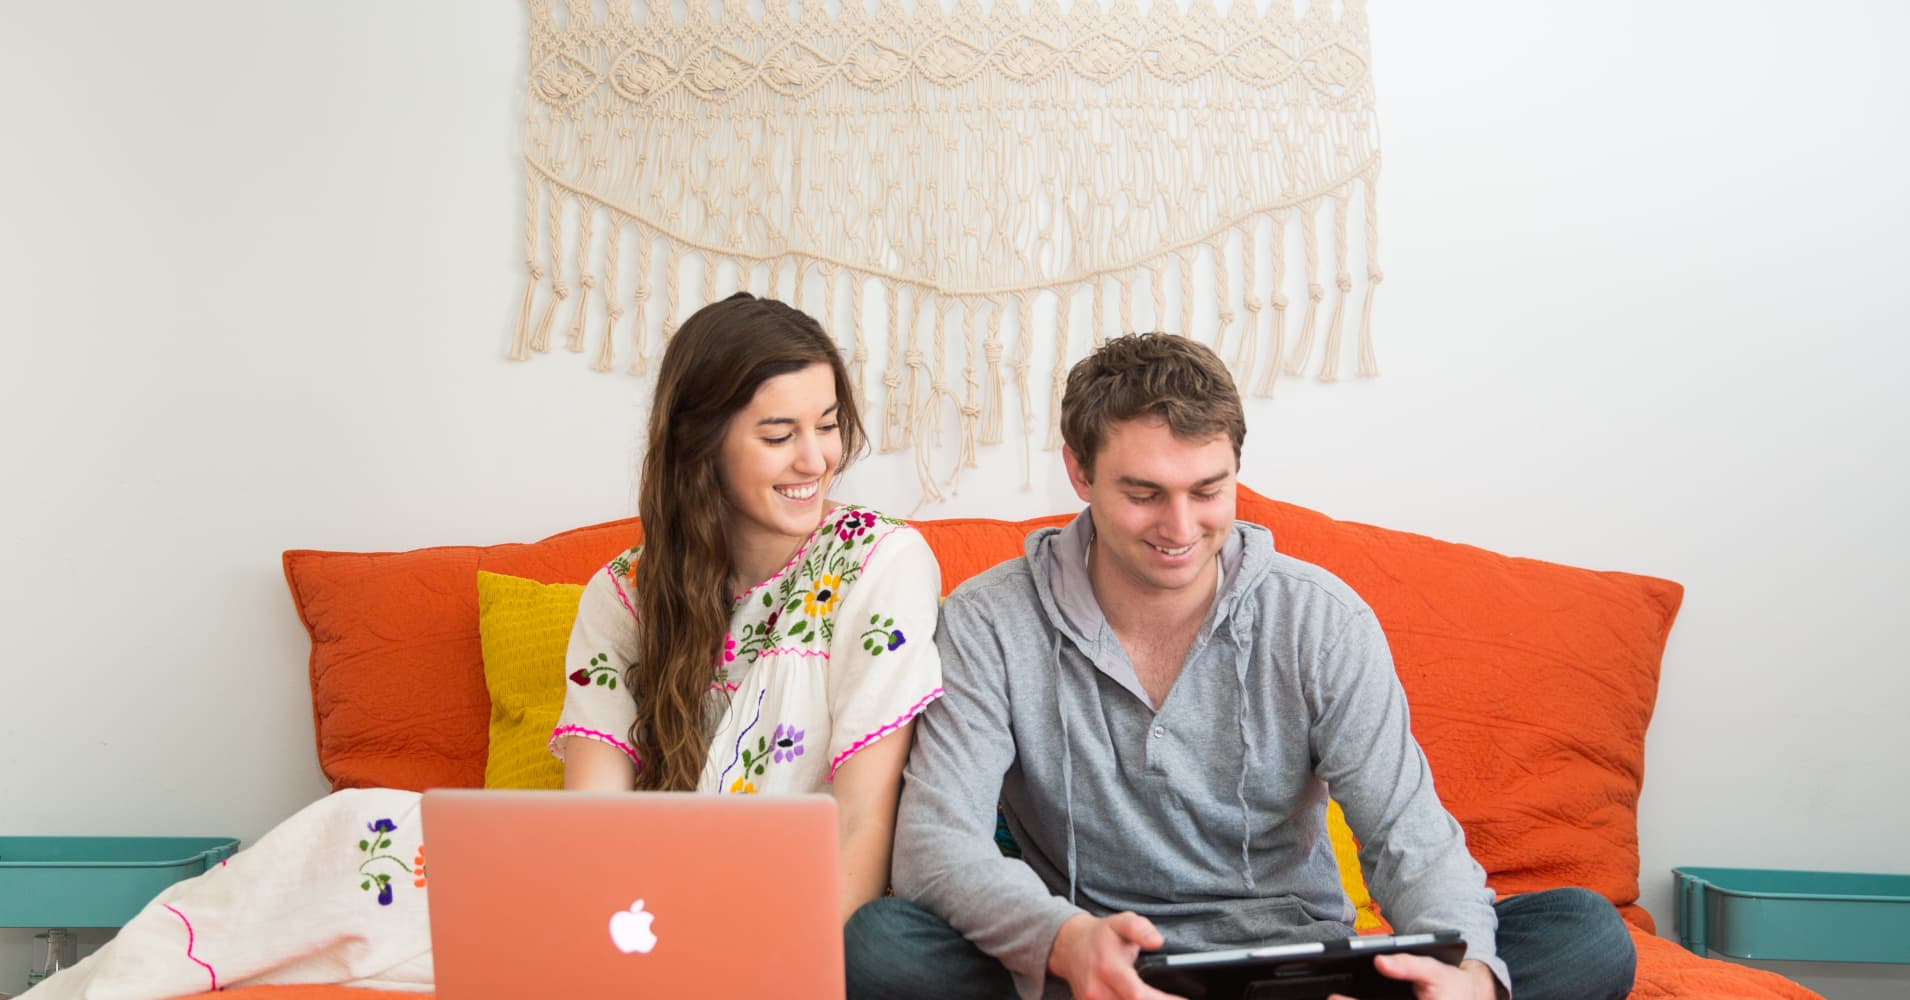 Here's how to tell if you should prioritize work over love, according to a relationship coach